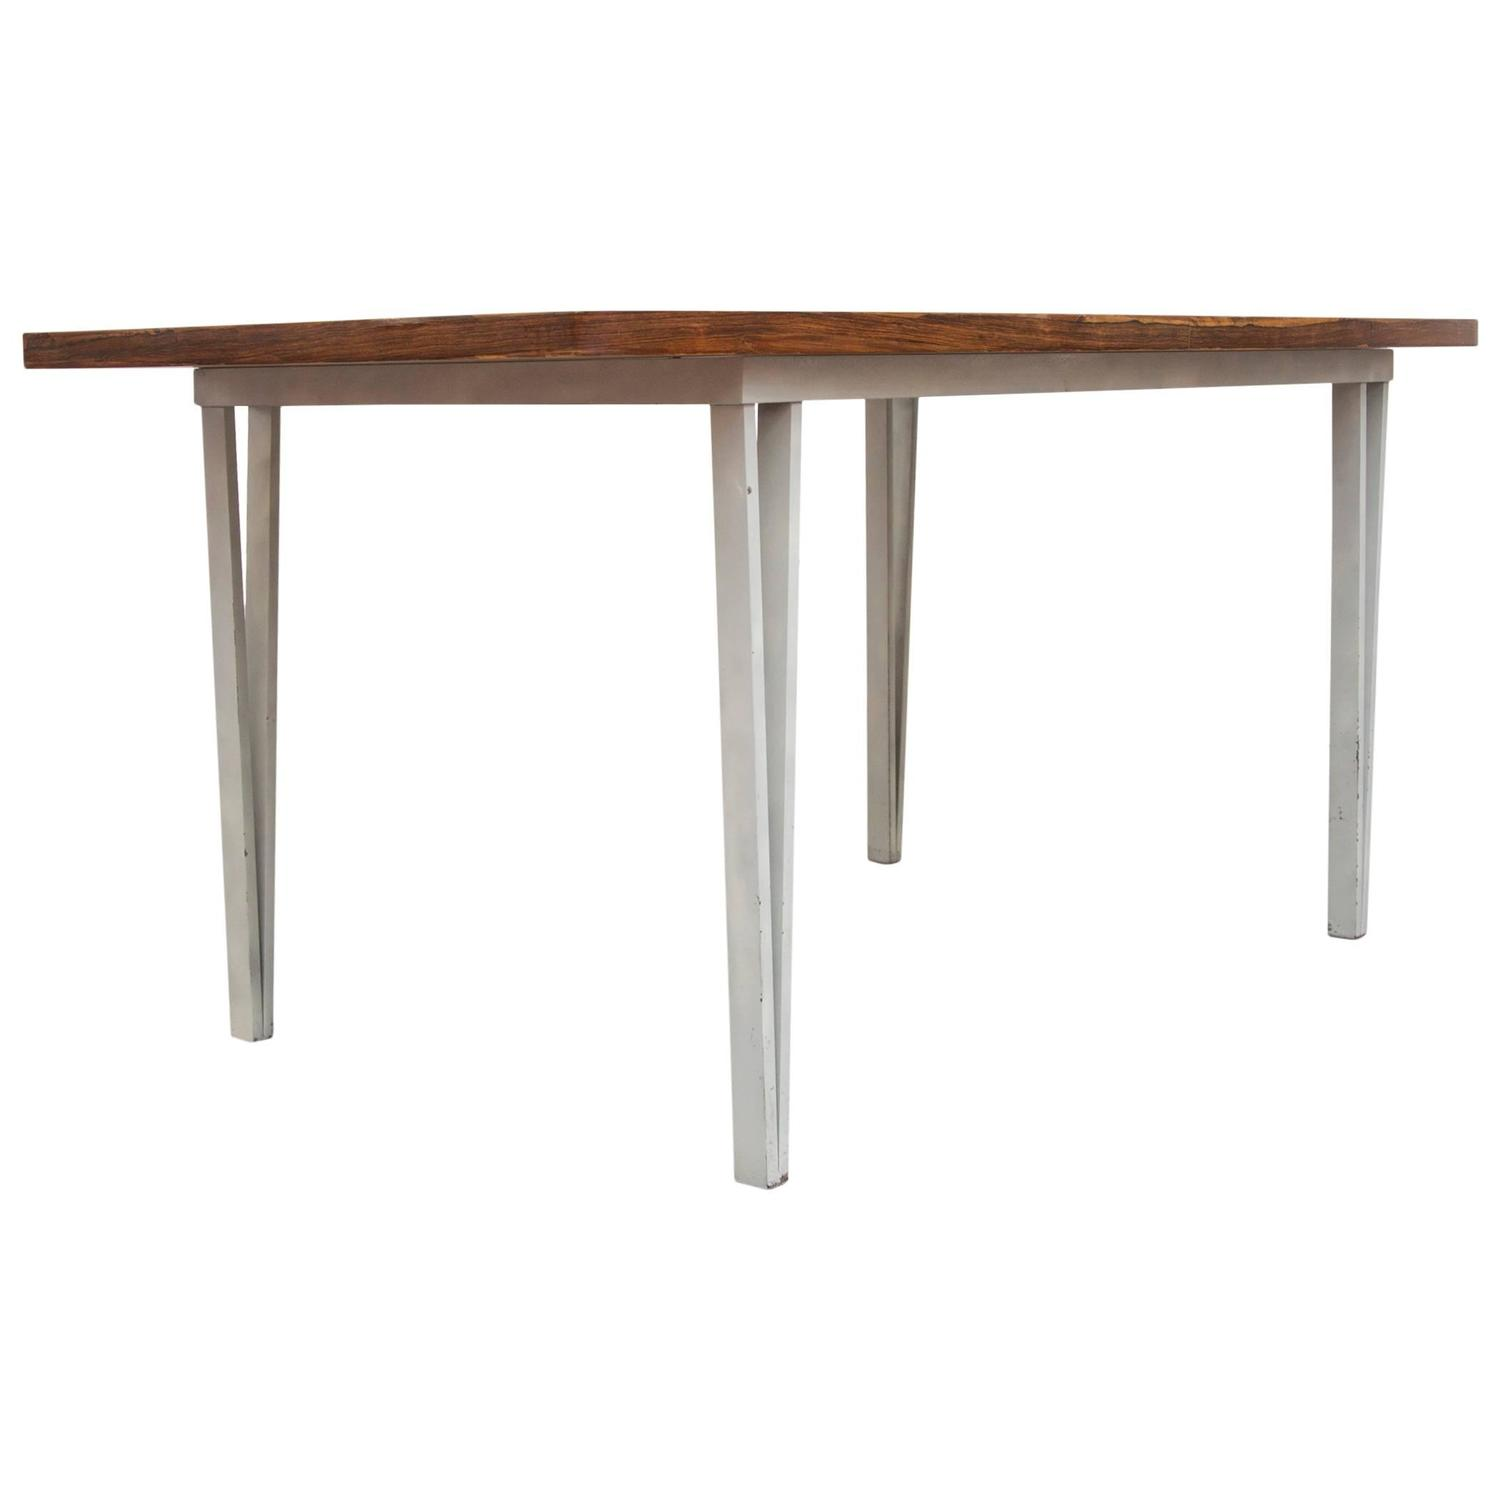 Modern Rosewood Bowed Top Dining Table with White Geometric Metal ...